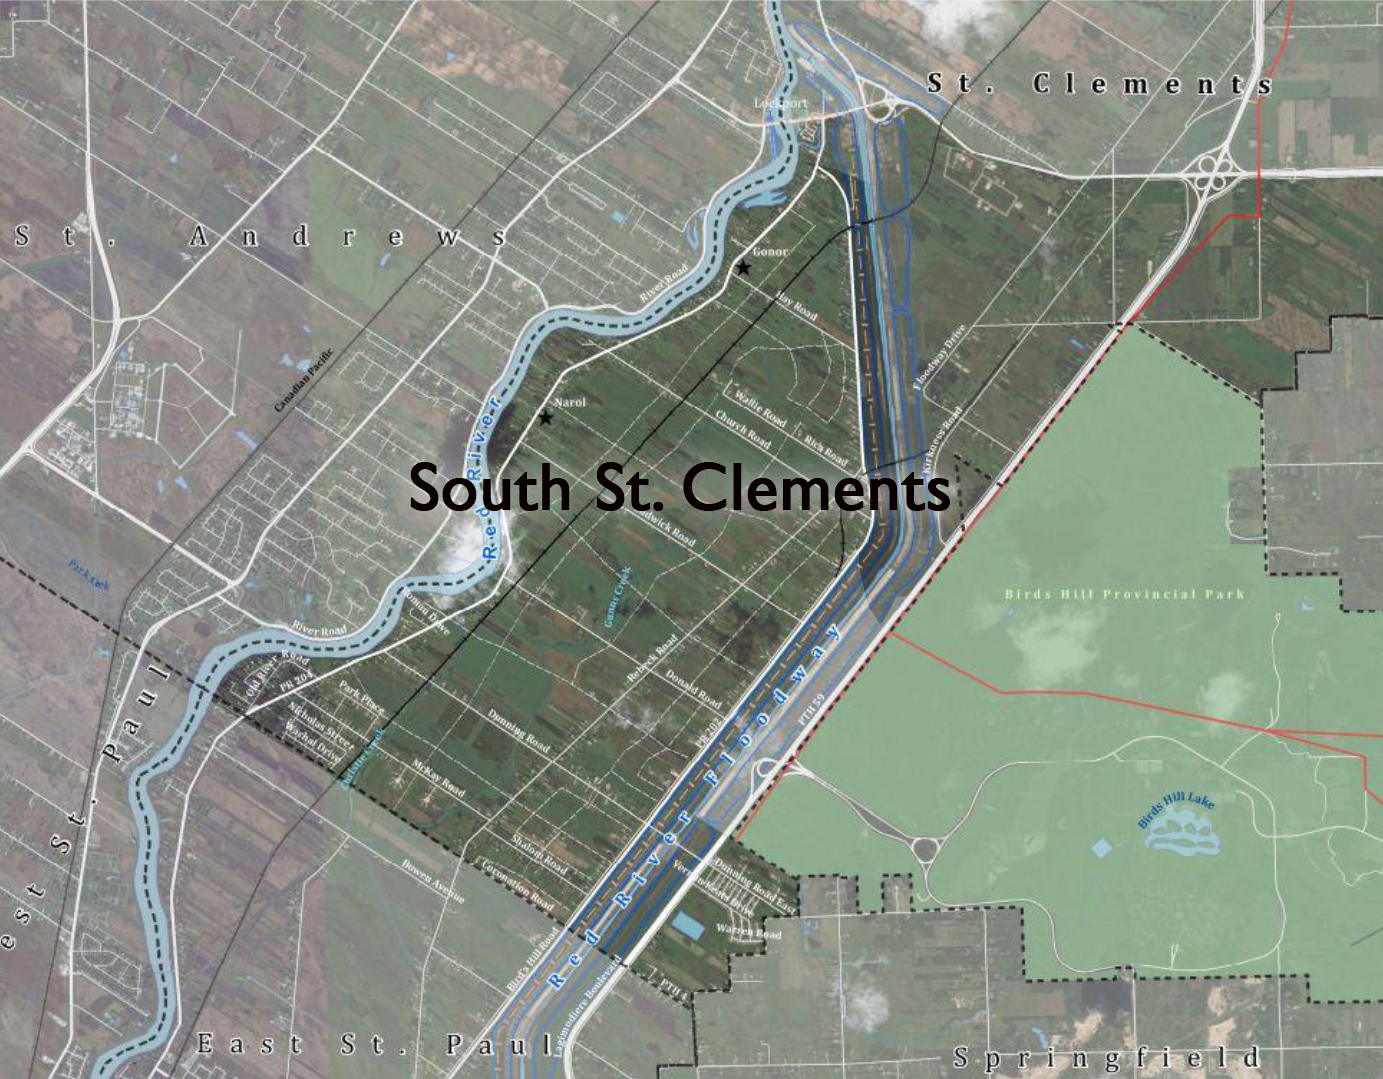 South St. Clements map